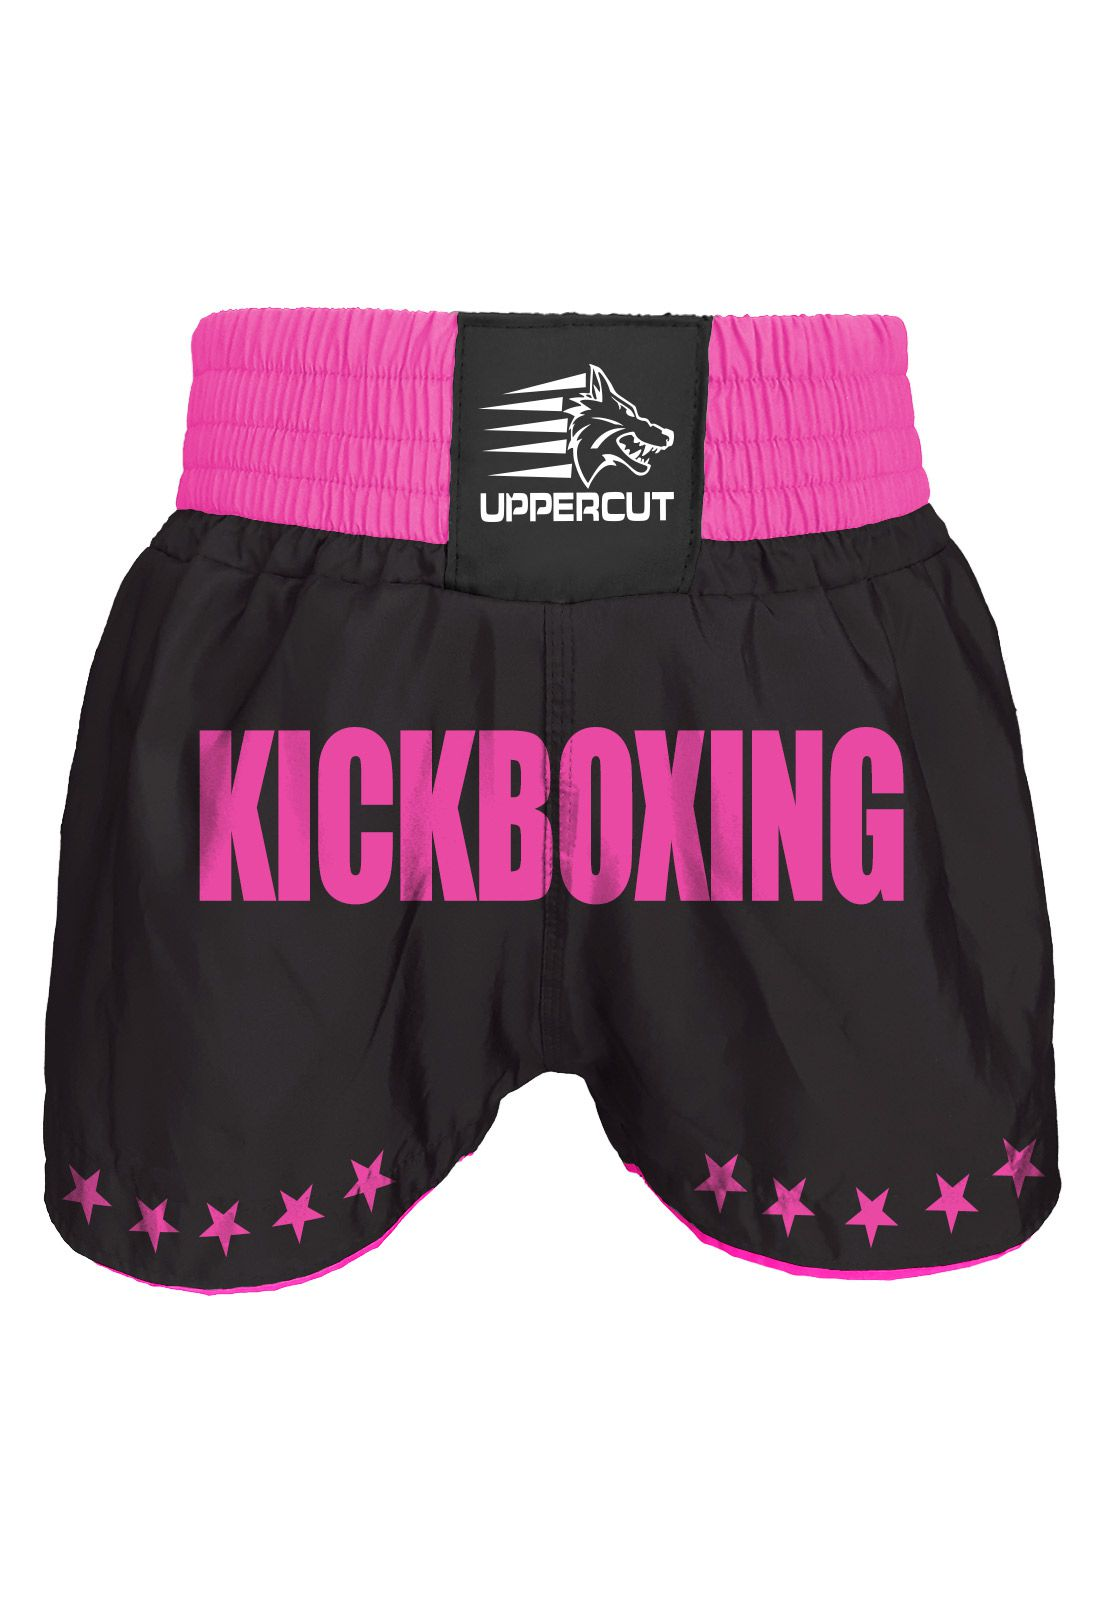 Calção Short Kickboxing  - GP - Preto/Rosa- Uppercut  - Loja do Competidor